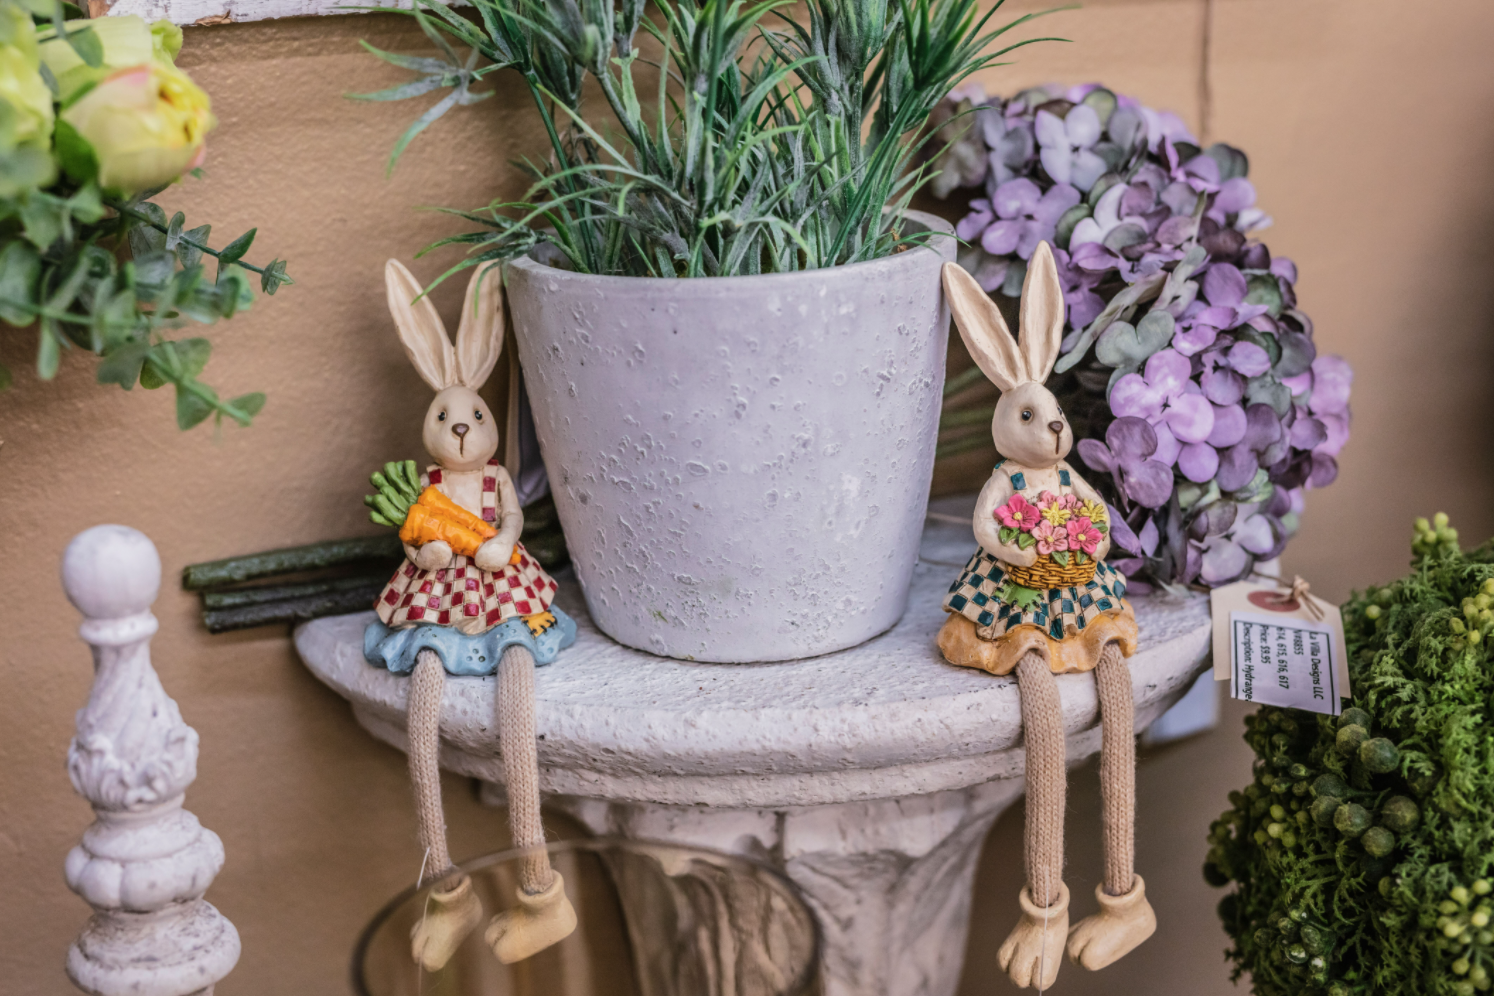 Incorporate these Home Decor Staples for Spring by Shopping at Cottonwood Market